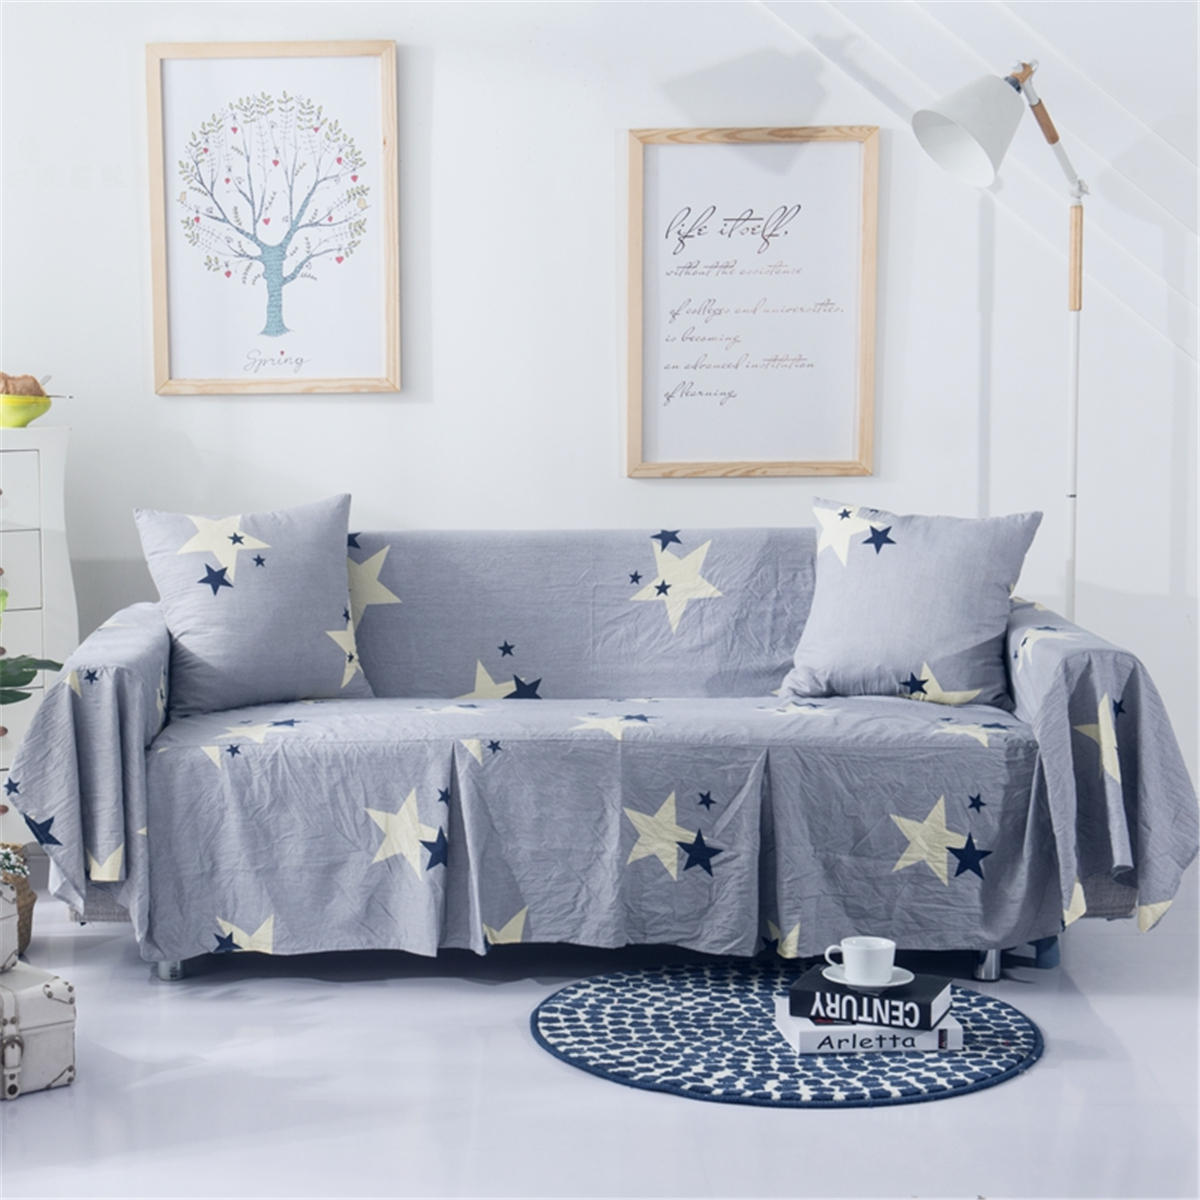 Chair Throw Covers 1 2 3 Seaters Chair Covers Sofa Covers Star Furniture Couch Protectors Chair Throw Mats